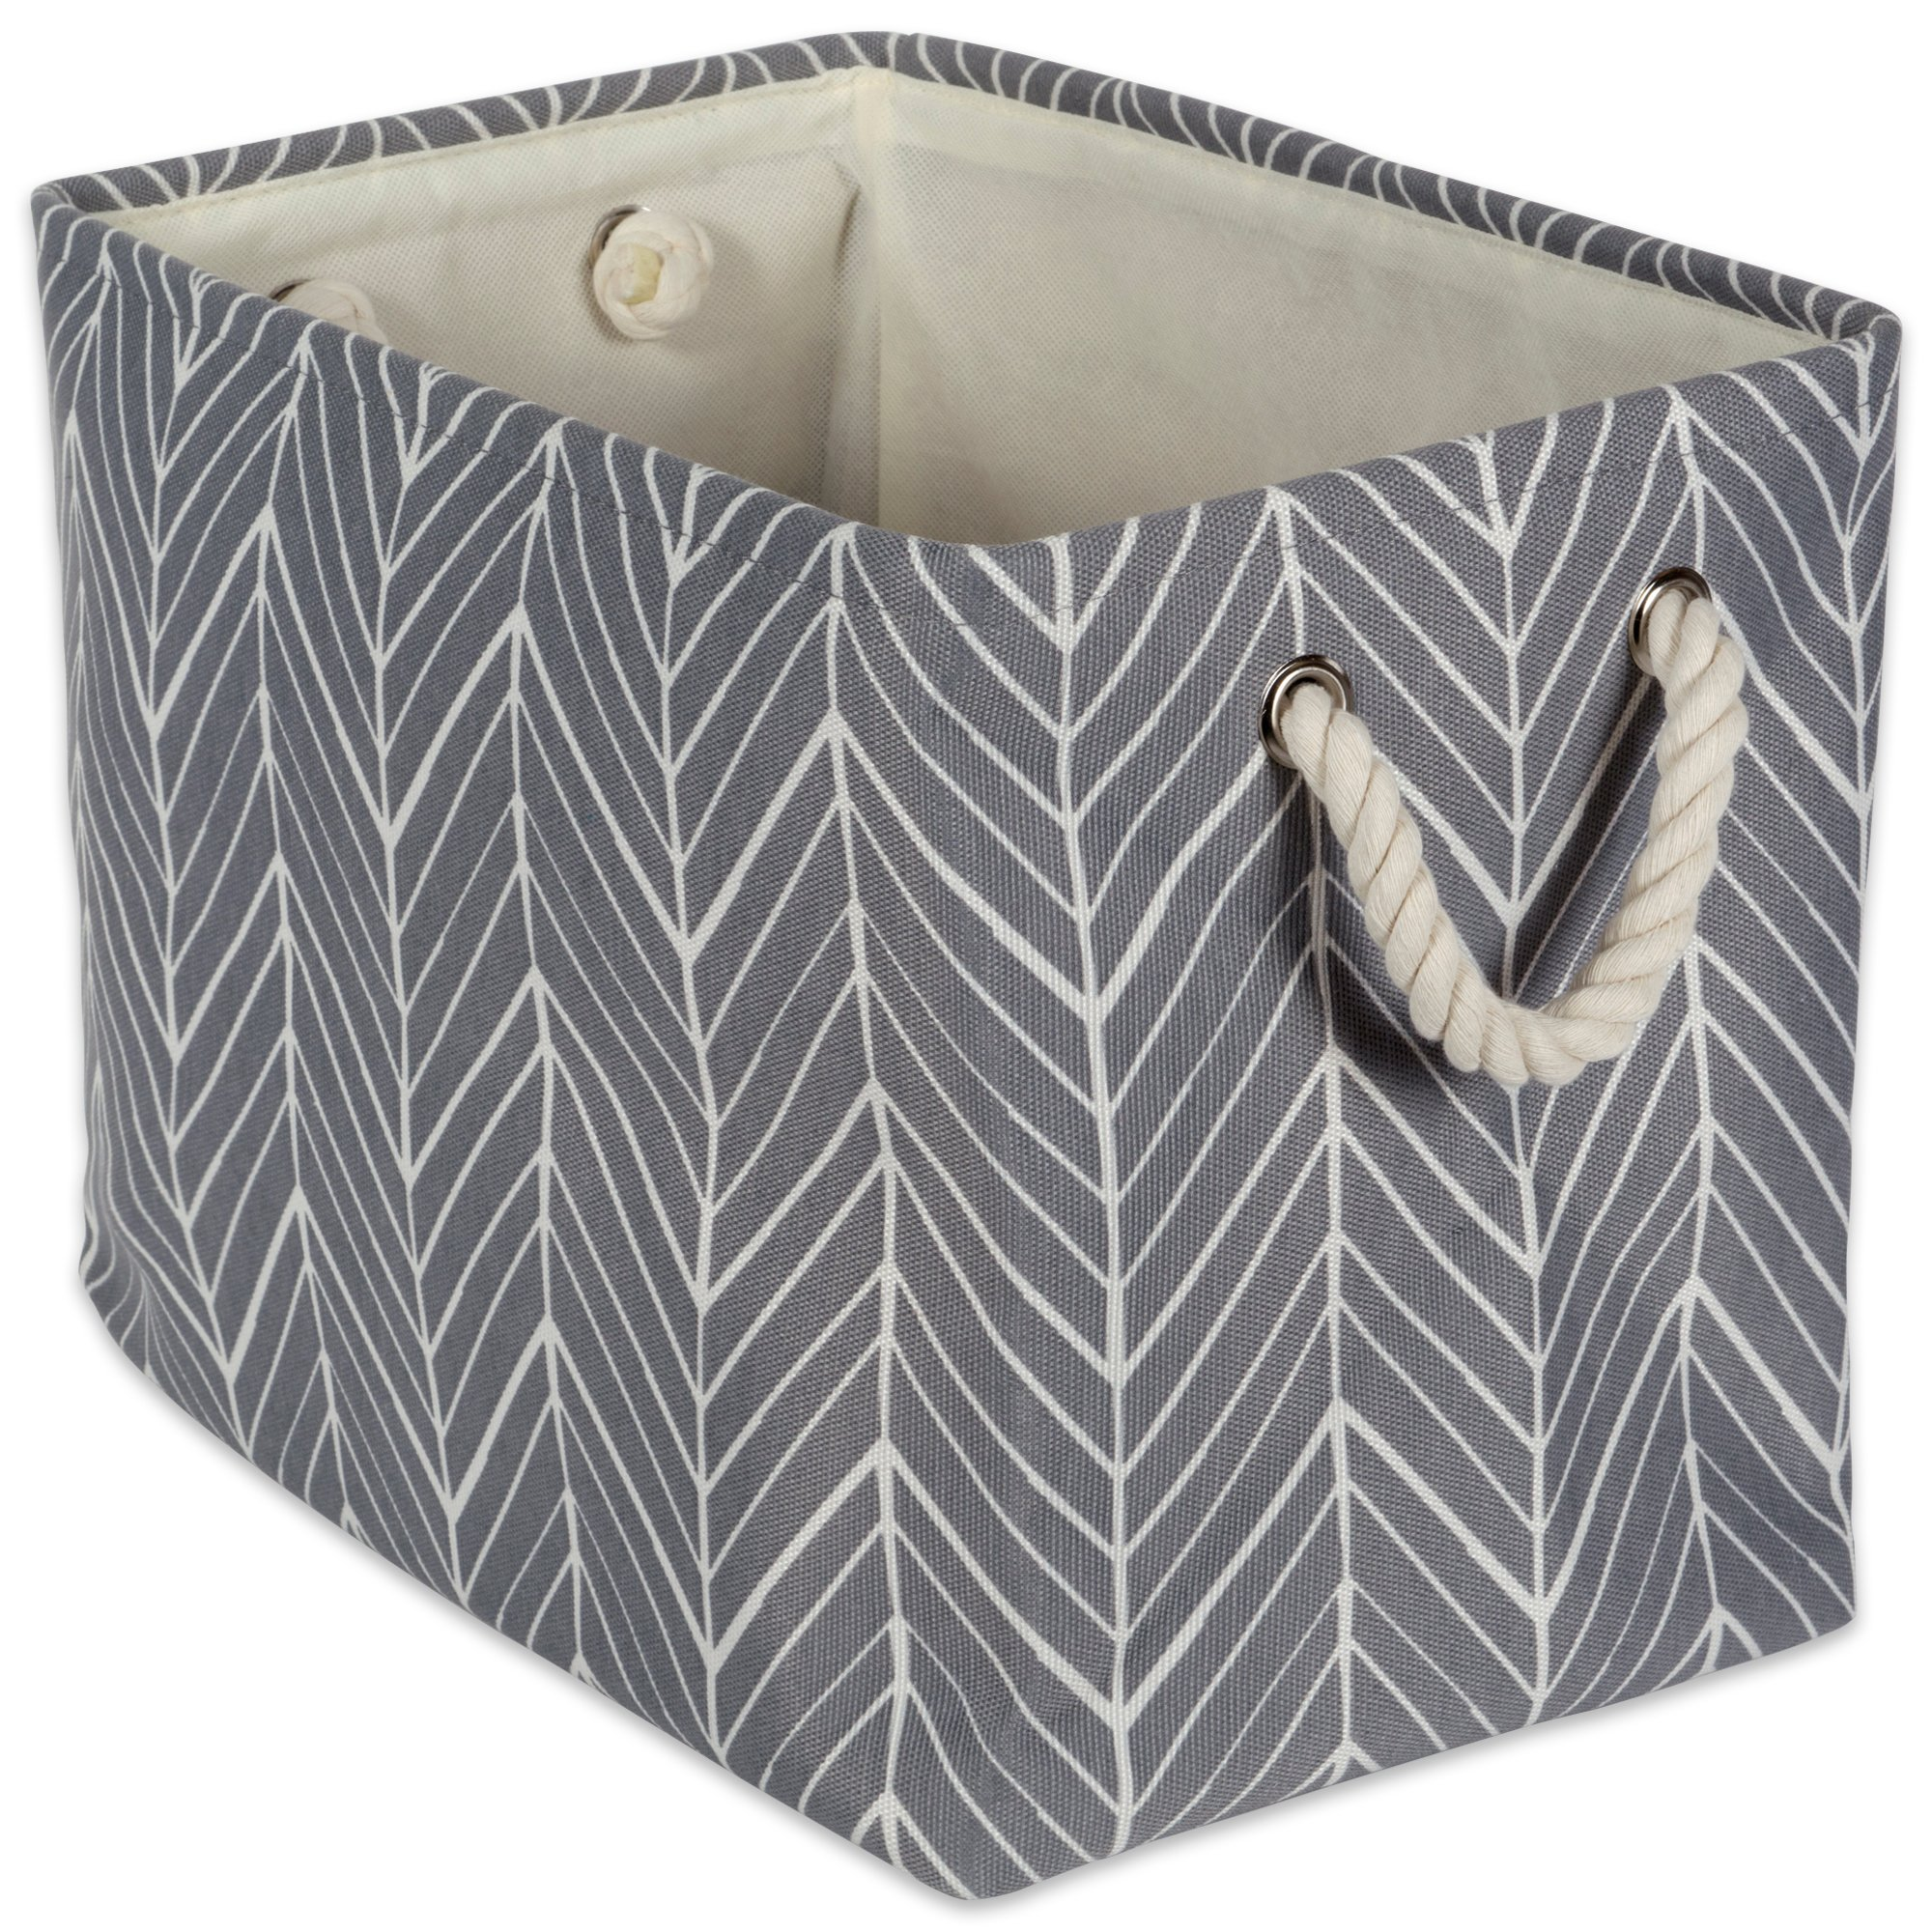 """DII Collapsible Polyester Storage Basket or Bin with Durable Cotton Handles, Home Organizer Solution for Office, Bedroom, Closet, Toys, Laundry(Medium - 16x10x12""""), Gray Herringbone"""